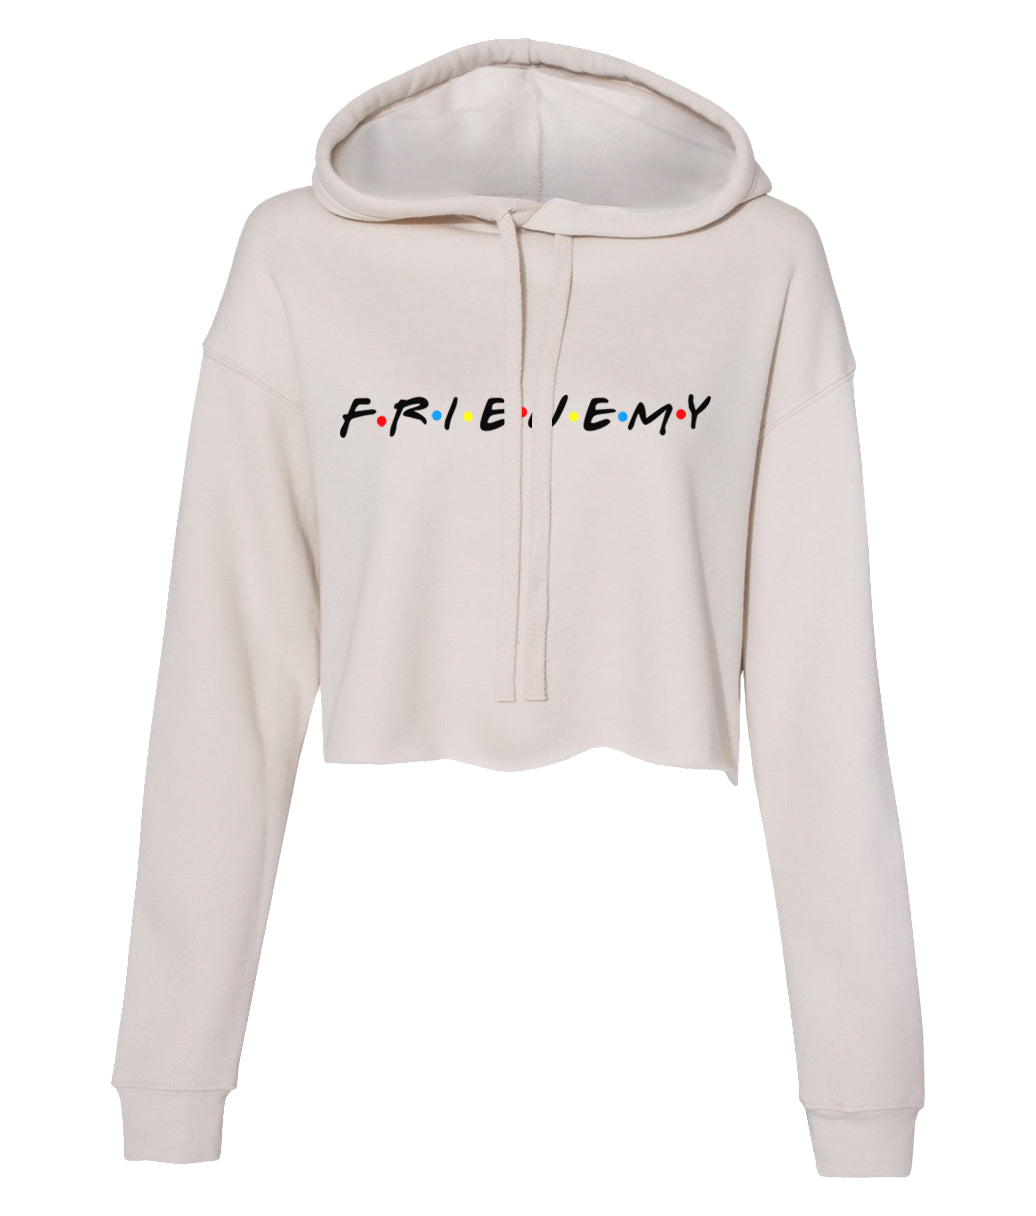 dust frienemy crop top hoodie